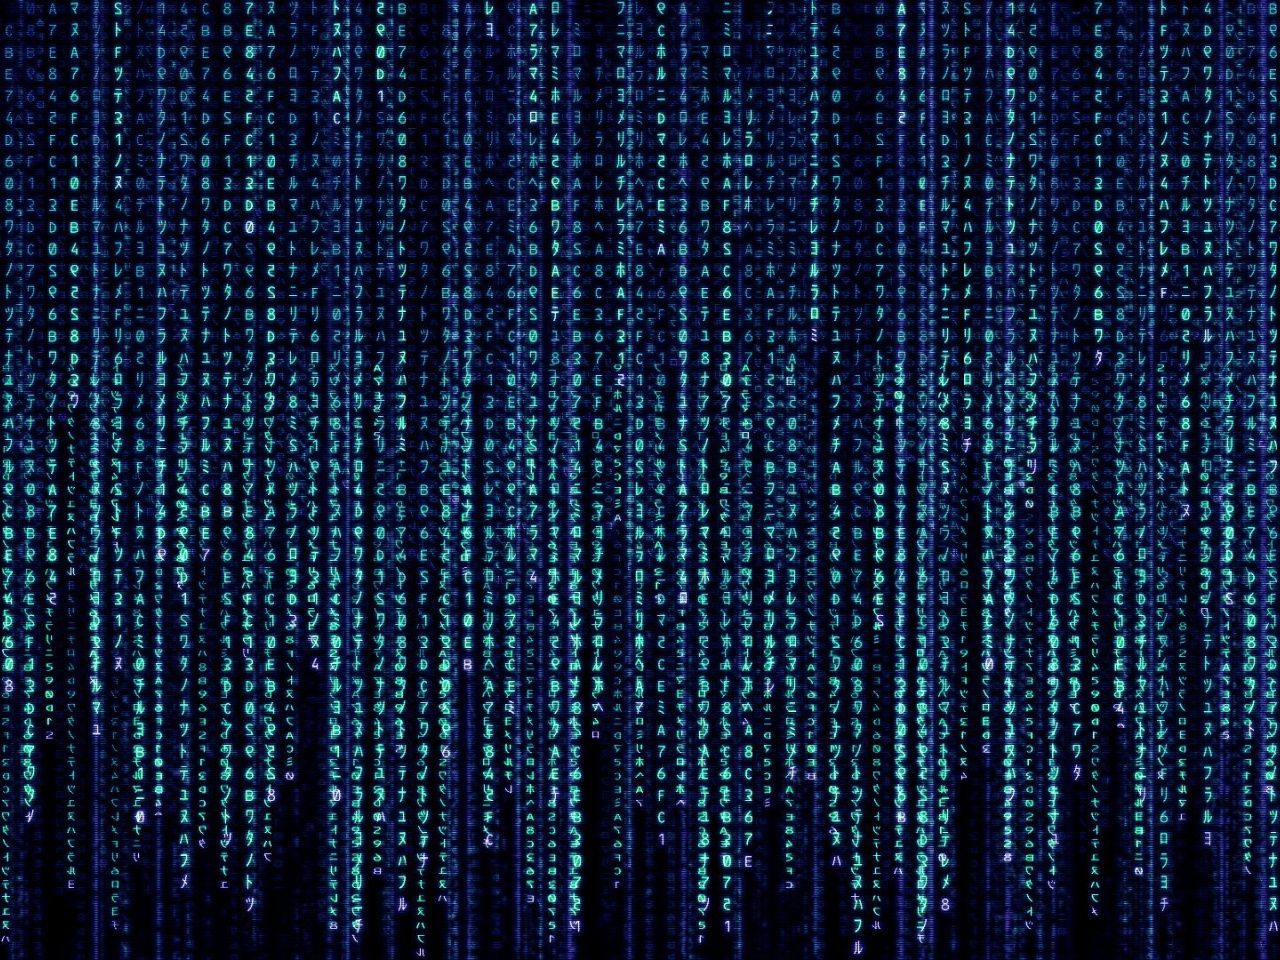 Hd Computer Science Backgrounds Code Wallpaper Cool Desktop Backgrounds Blue Wallpapers